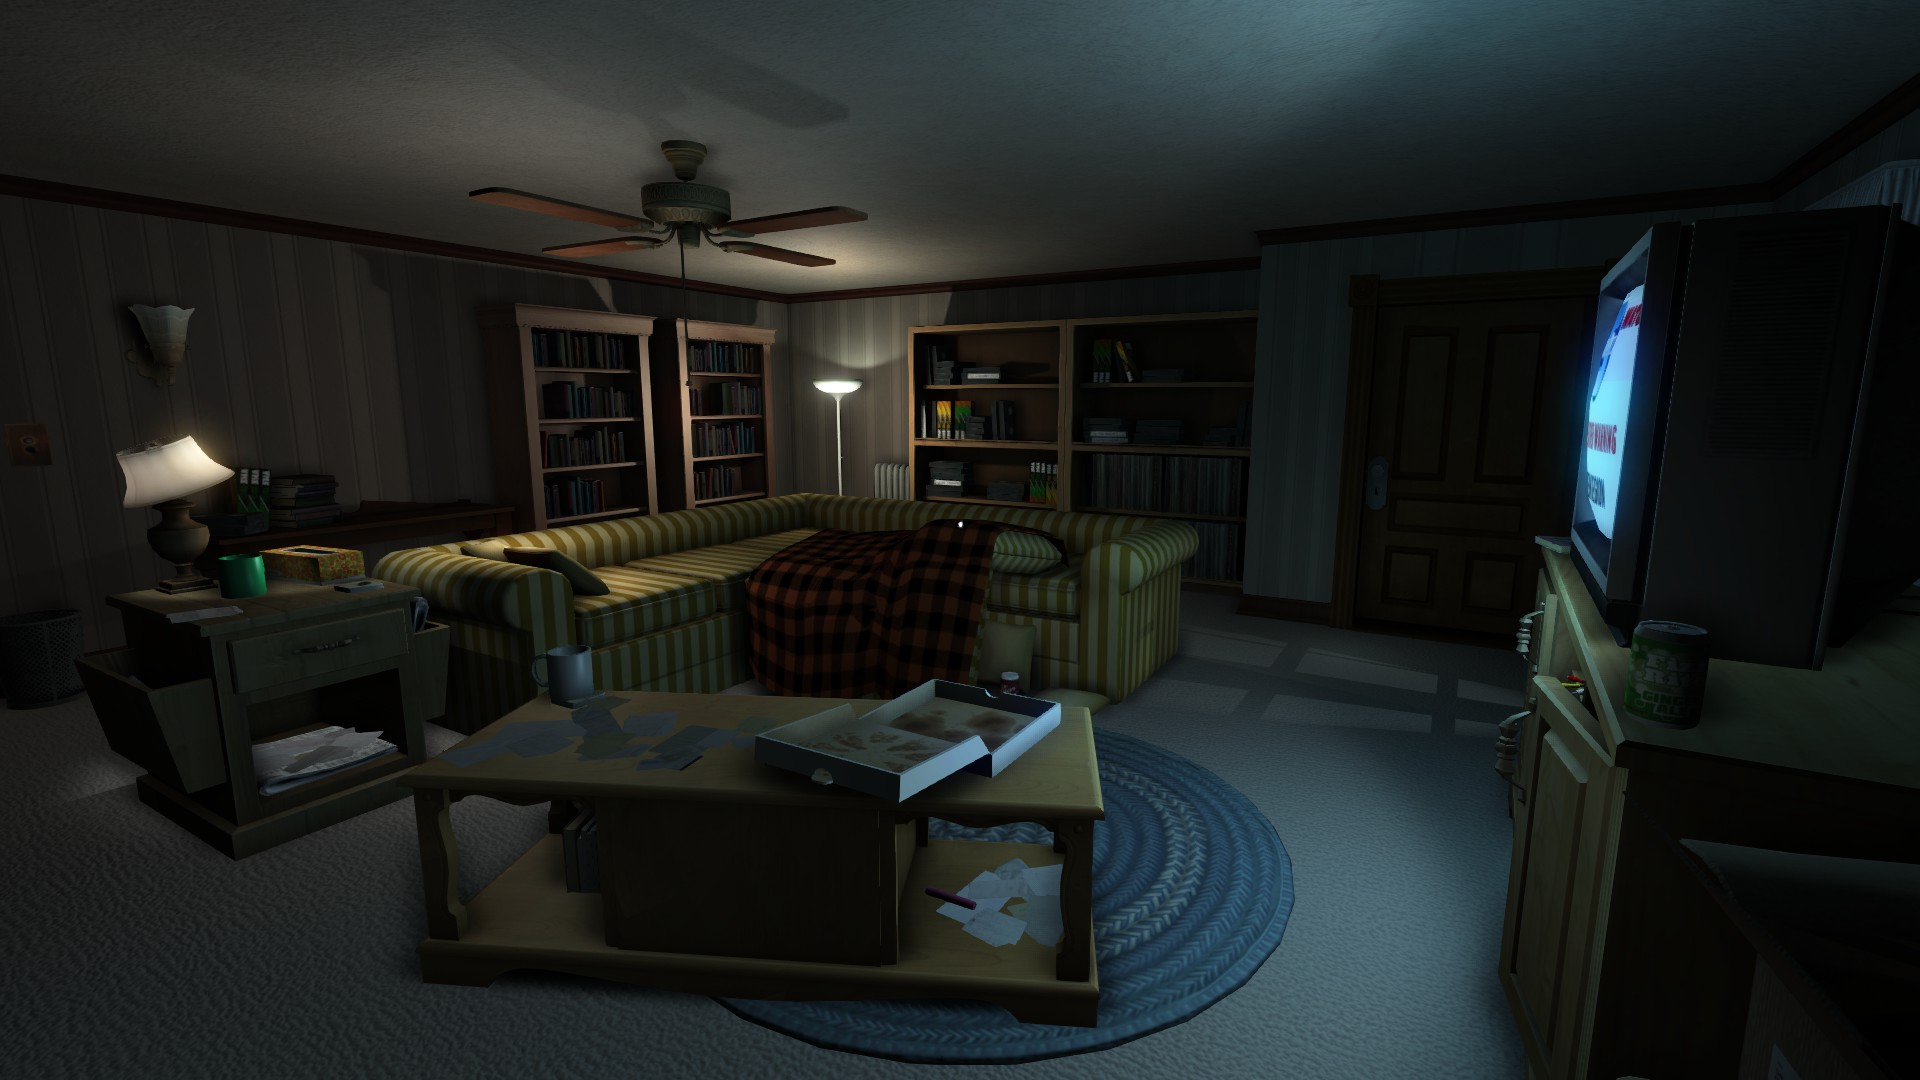 Gone Home , TV Room, 2013. Image courtesy of The Fullbright Company.